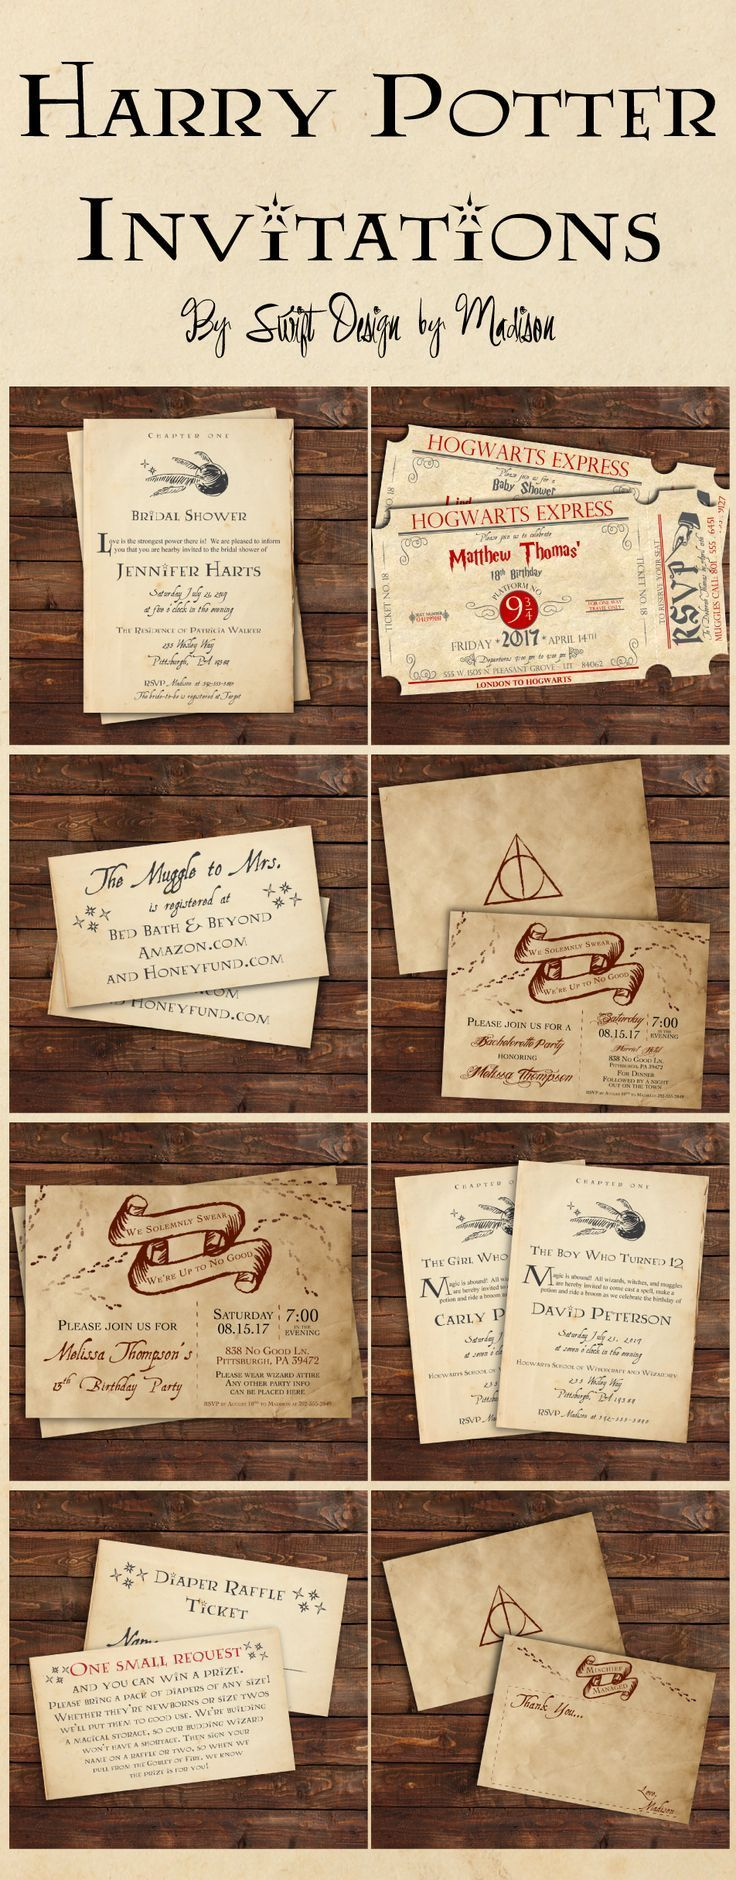 Harry potter inspired invitations harry potter party harry potter harry potter inspired invitations harry potter party harry potter birthday invitation harry potter bridal shower invitation harry potter baby s stopboris Images